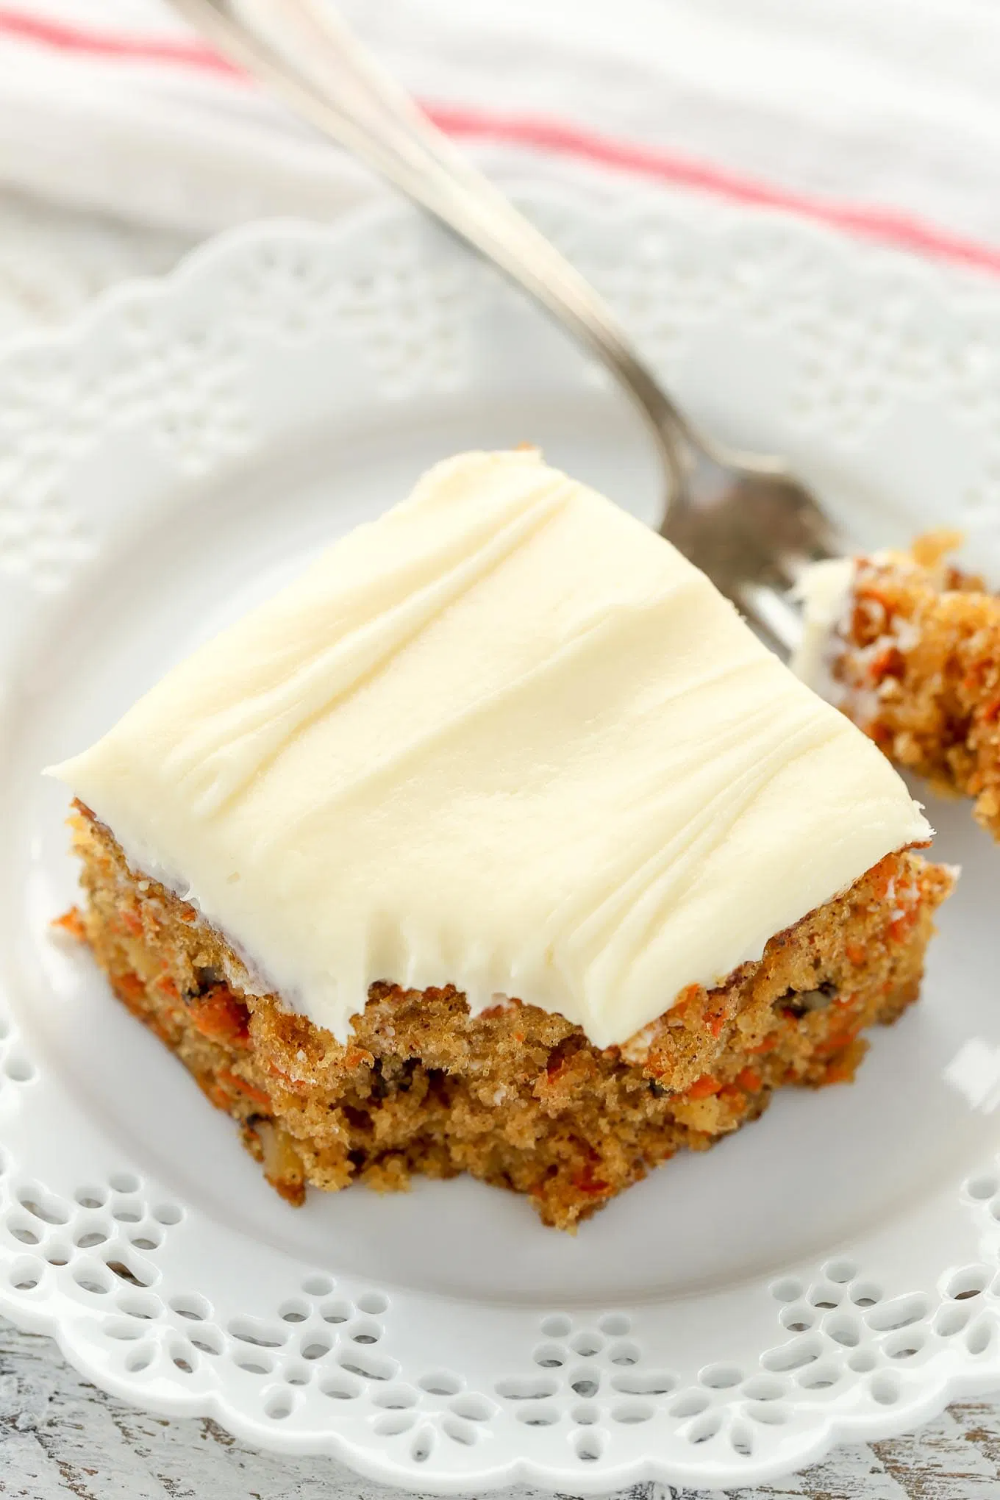 The Best Carrot Cake Recipe In 2020 Carrot Cake Recipe Homemade Carrot Cake Recipe Carrot Cake Recipe Easy